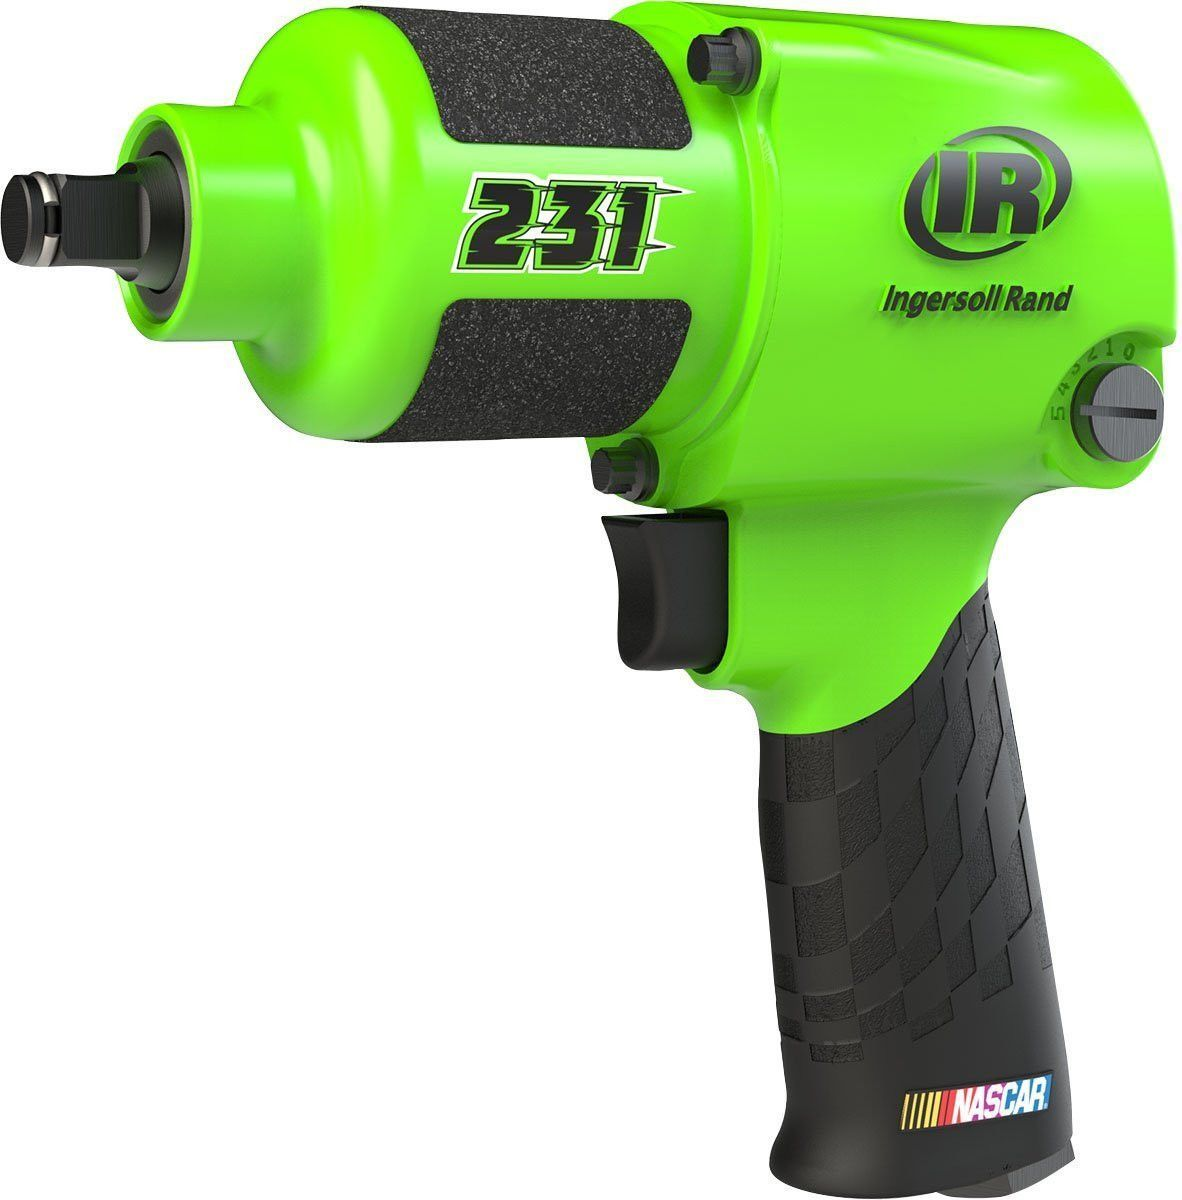 "Ingersoll Rand 231RG 1/2"" Impact Wrench, Green Racing"